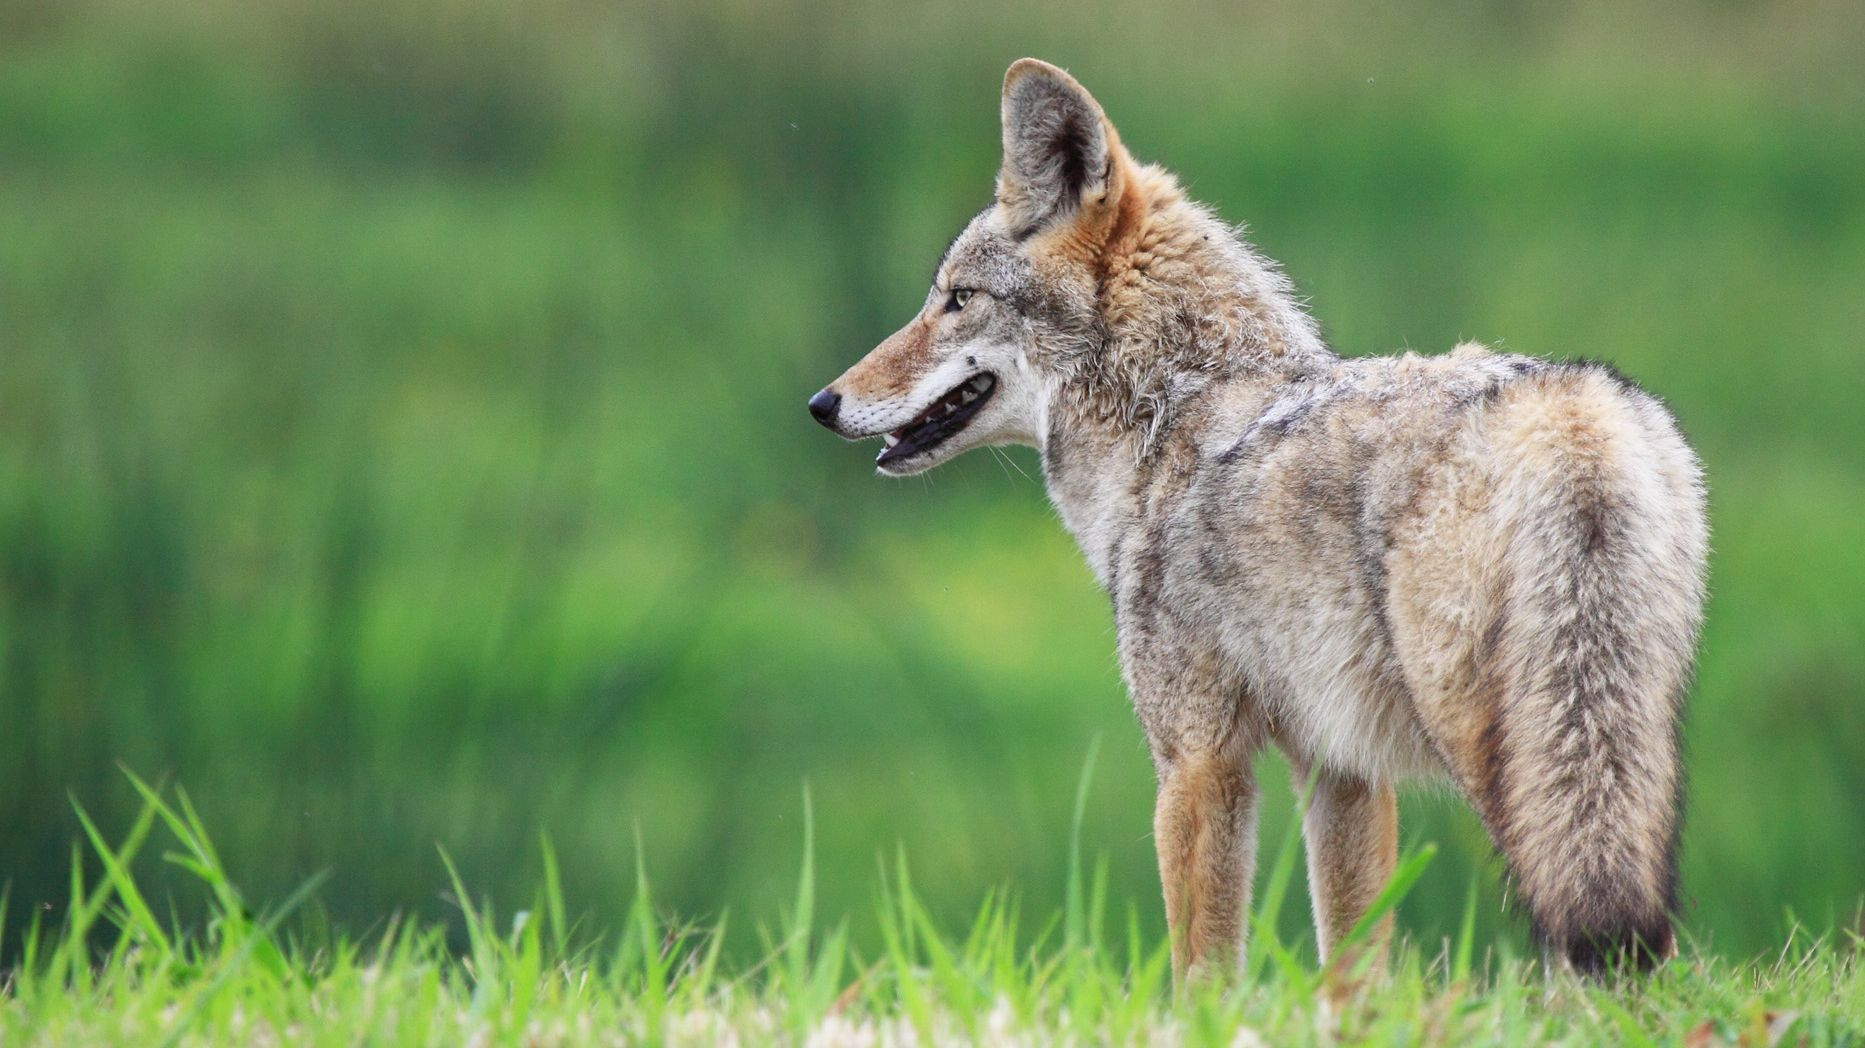 10 Wily Facts About Coyotes